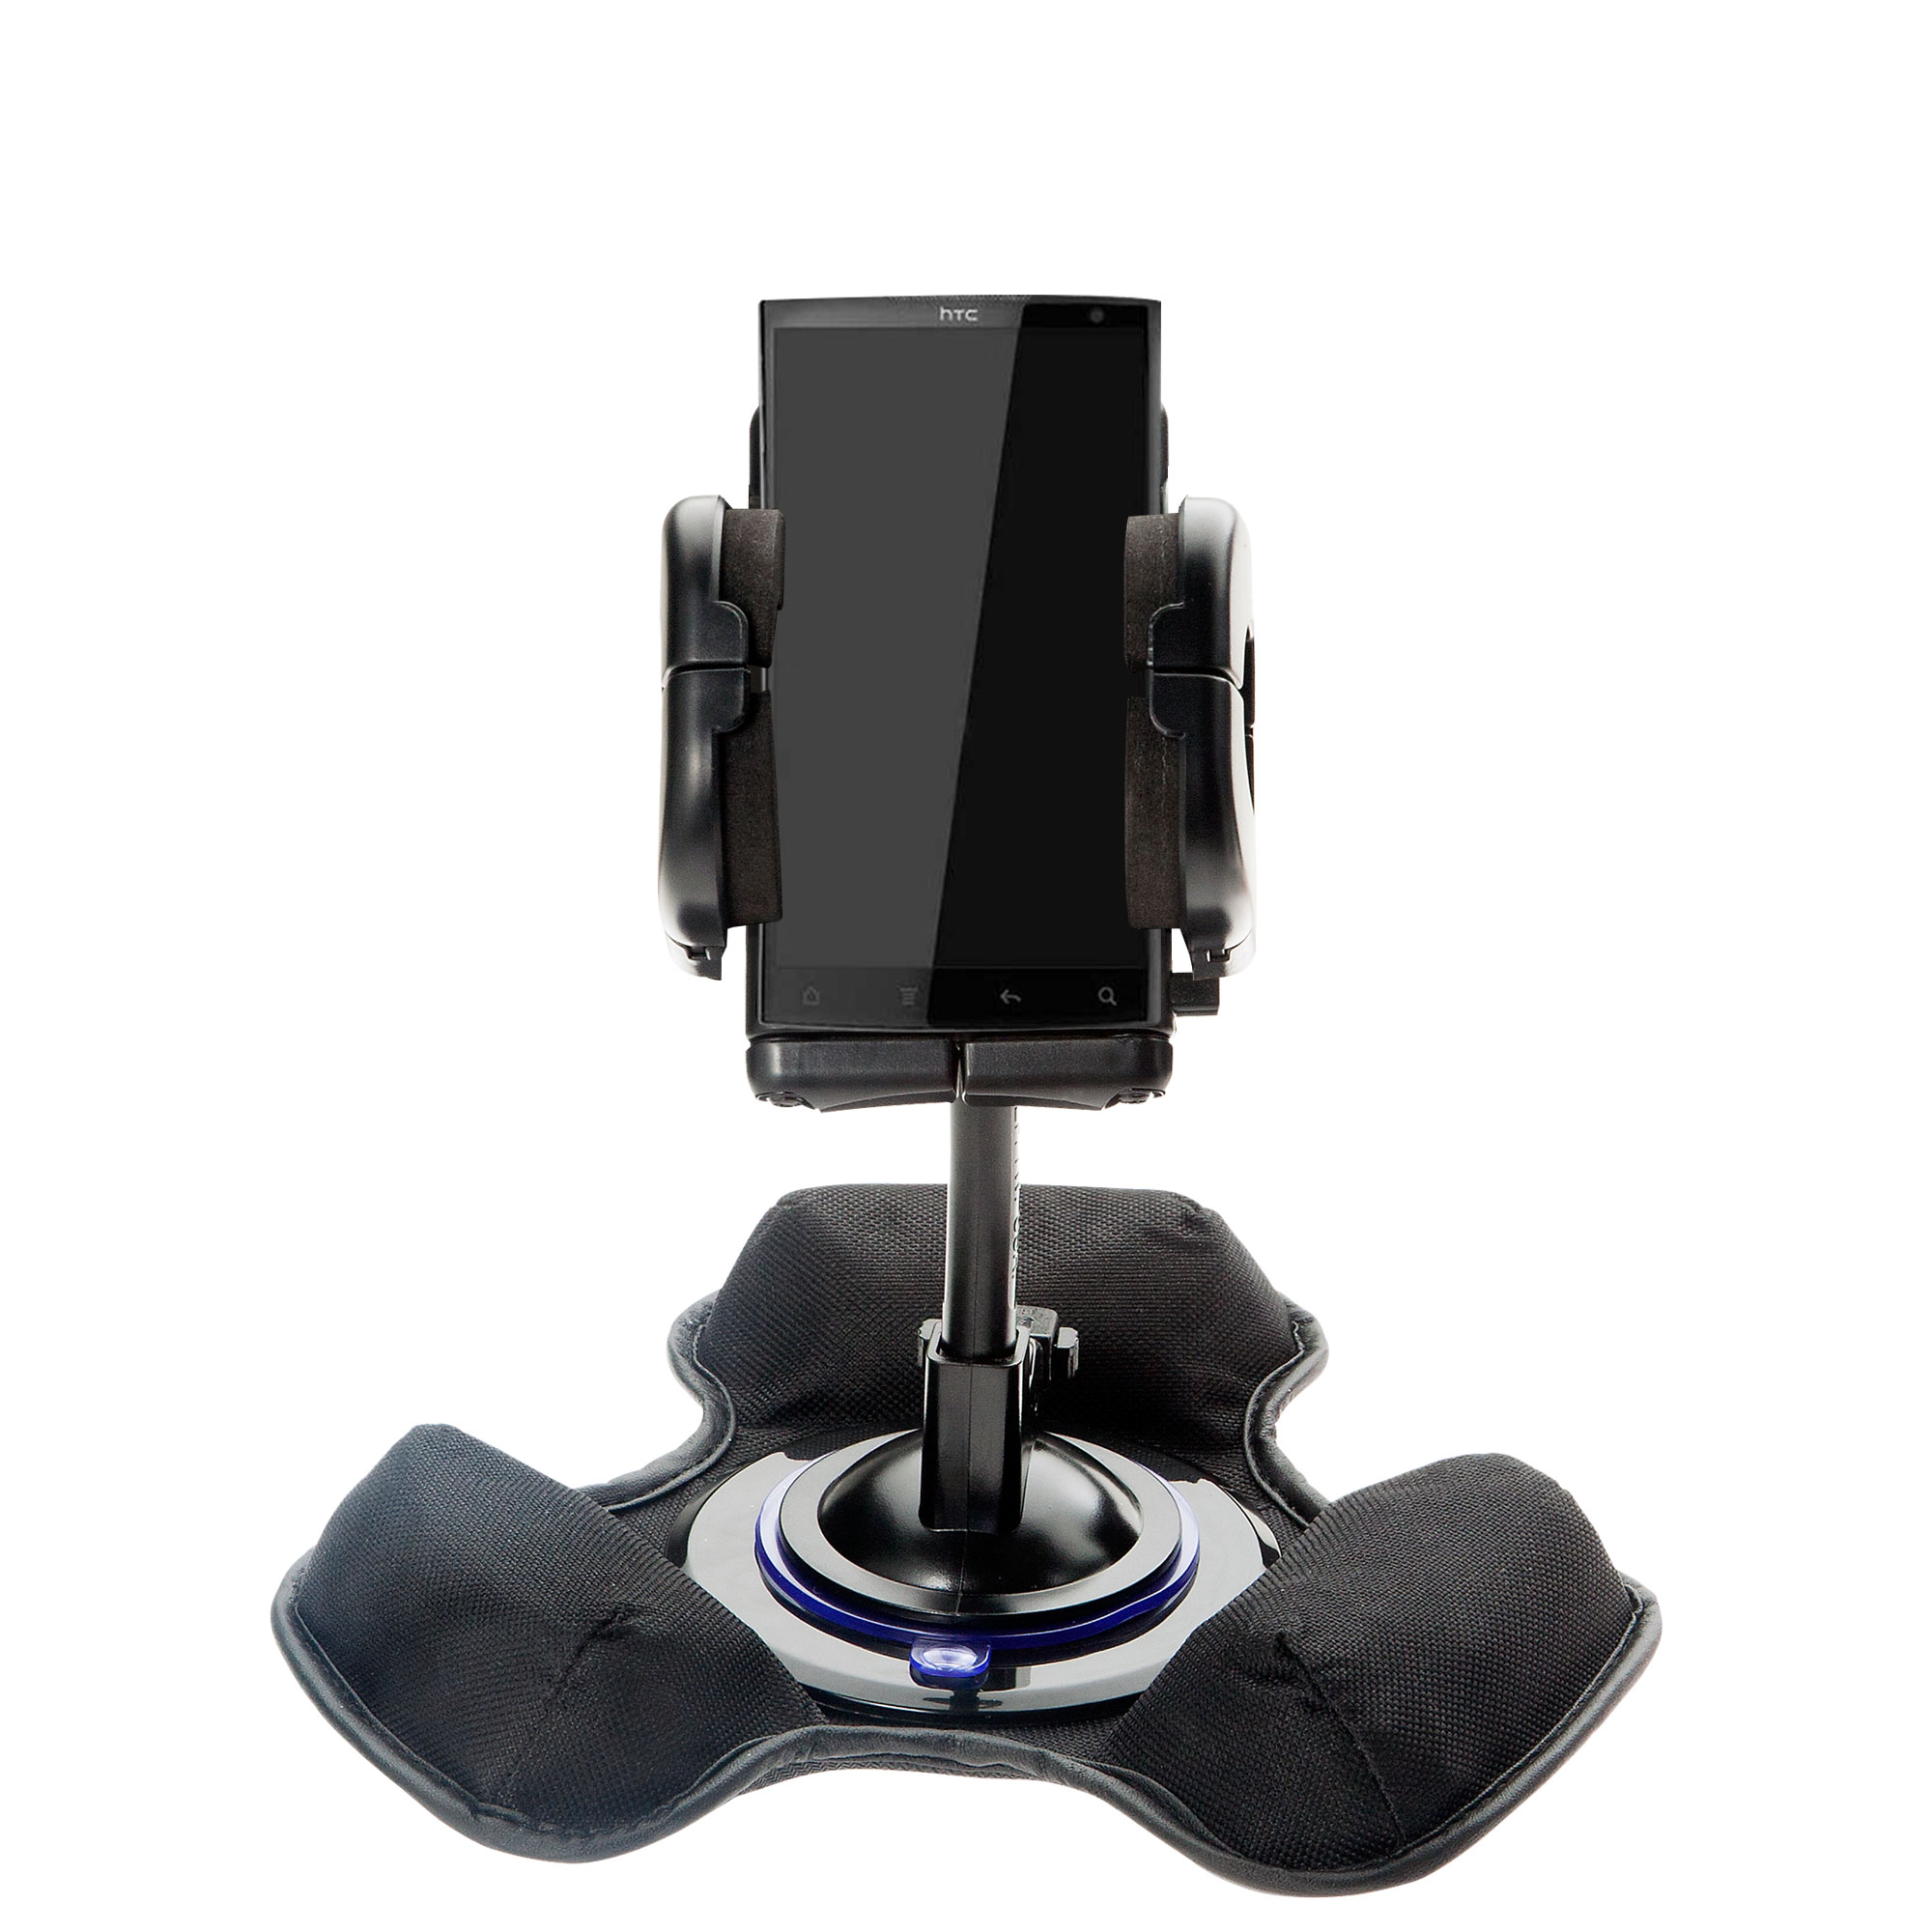 Dash and Windshield Holder compatible with the HTC Zeta